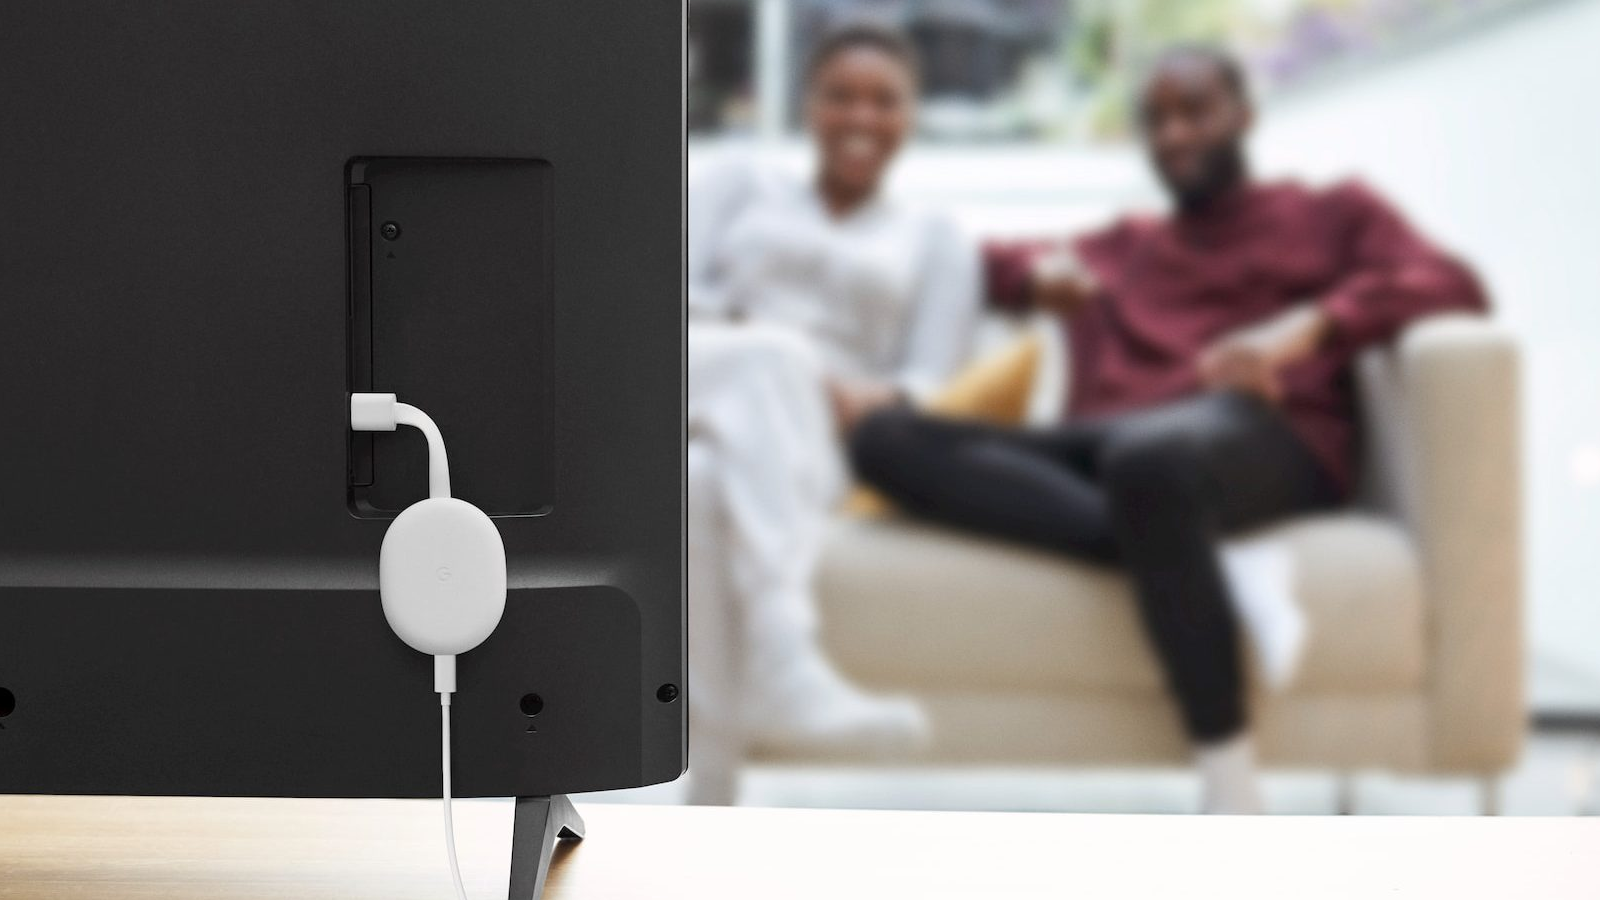 Chromecast with Google TV becomes HDR10+ certified, but there isn't much support for it yet